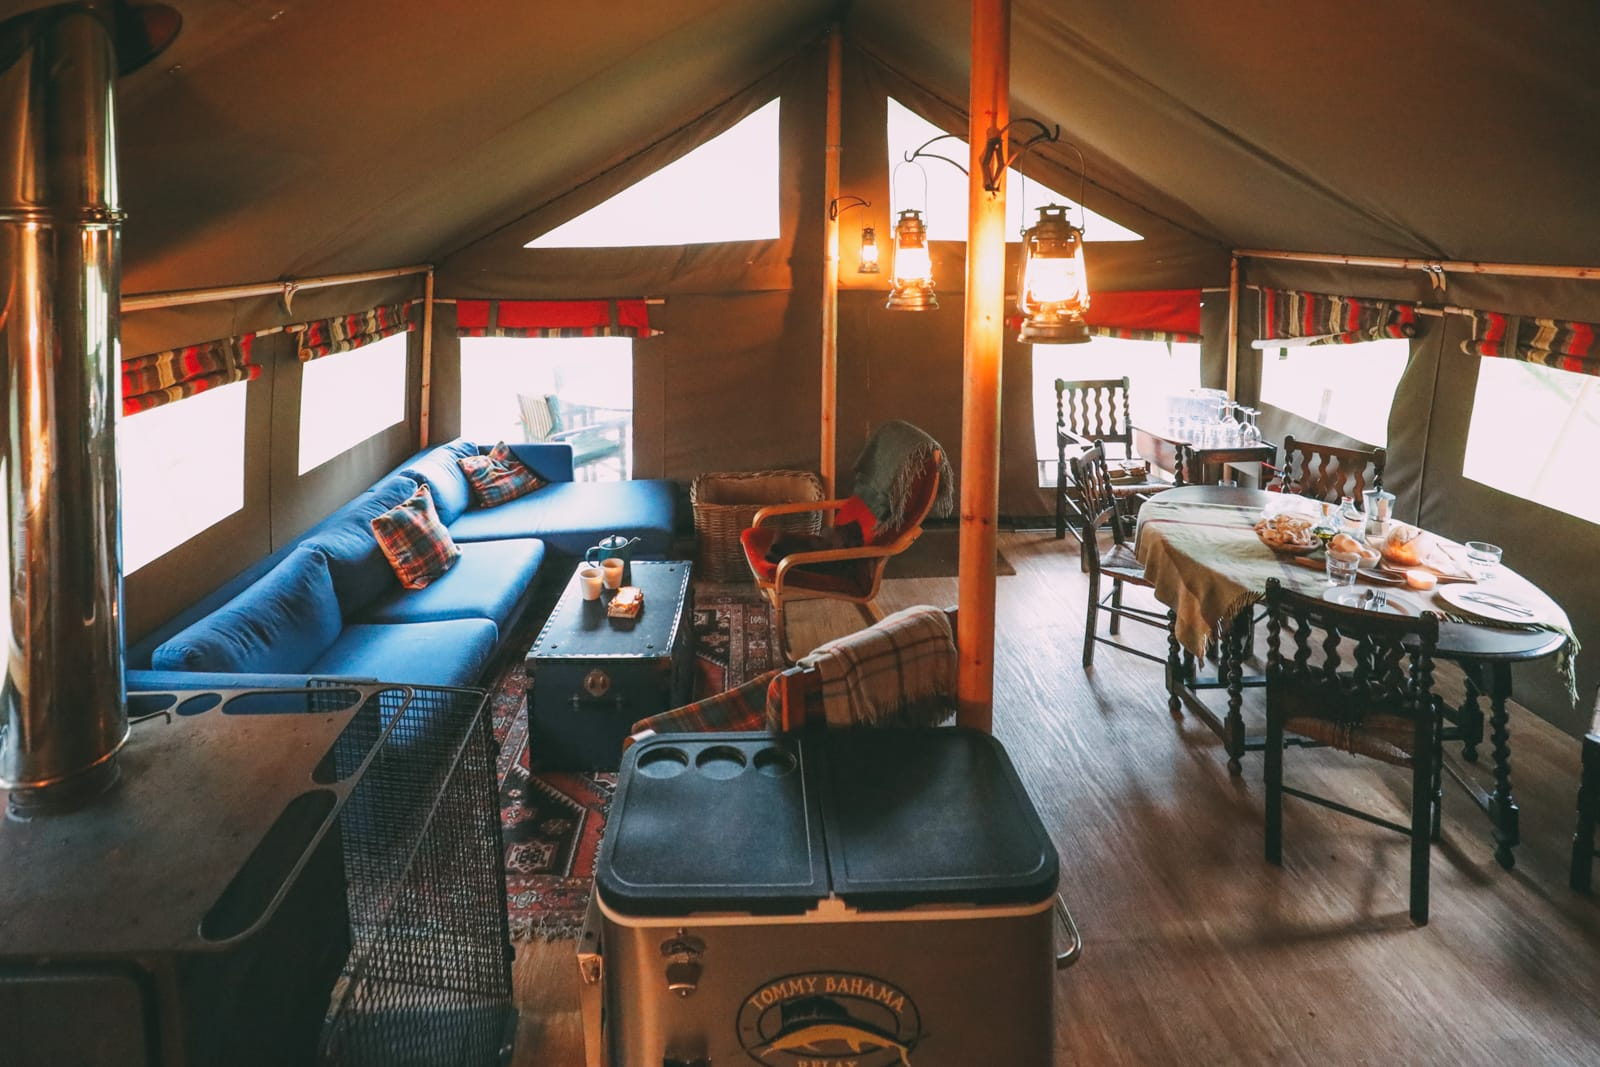 Finding Robin Hood's Bow And Safari Lodging In The Peak District, England (38)